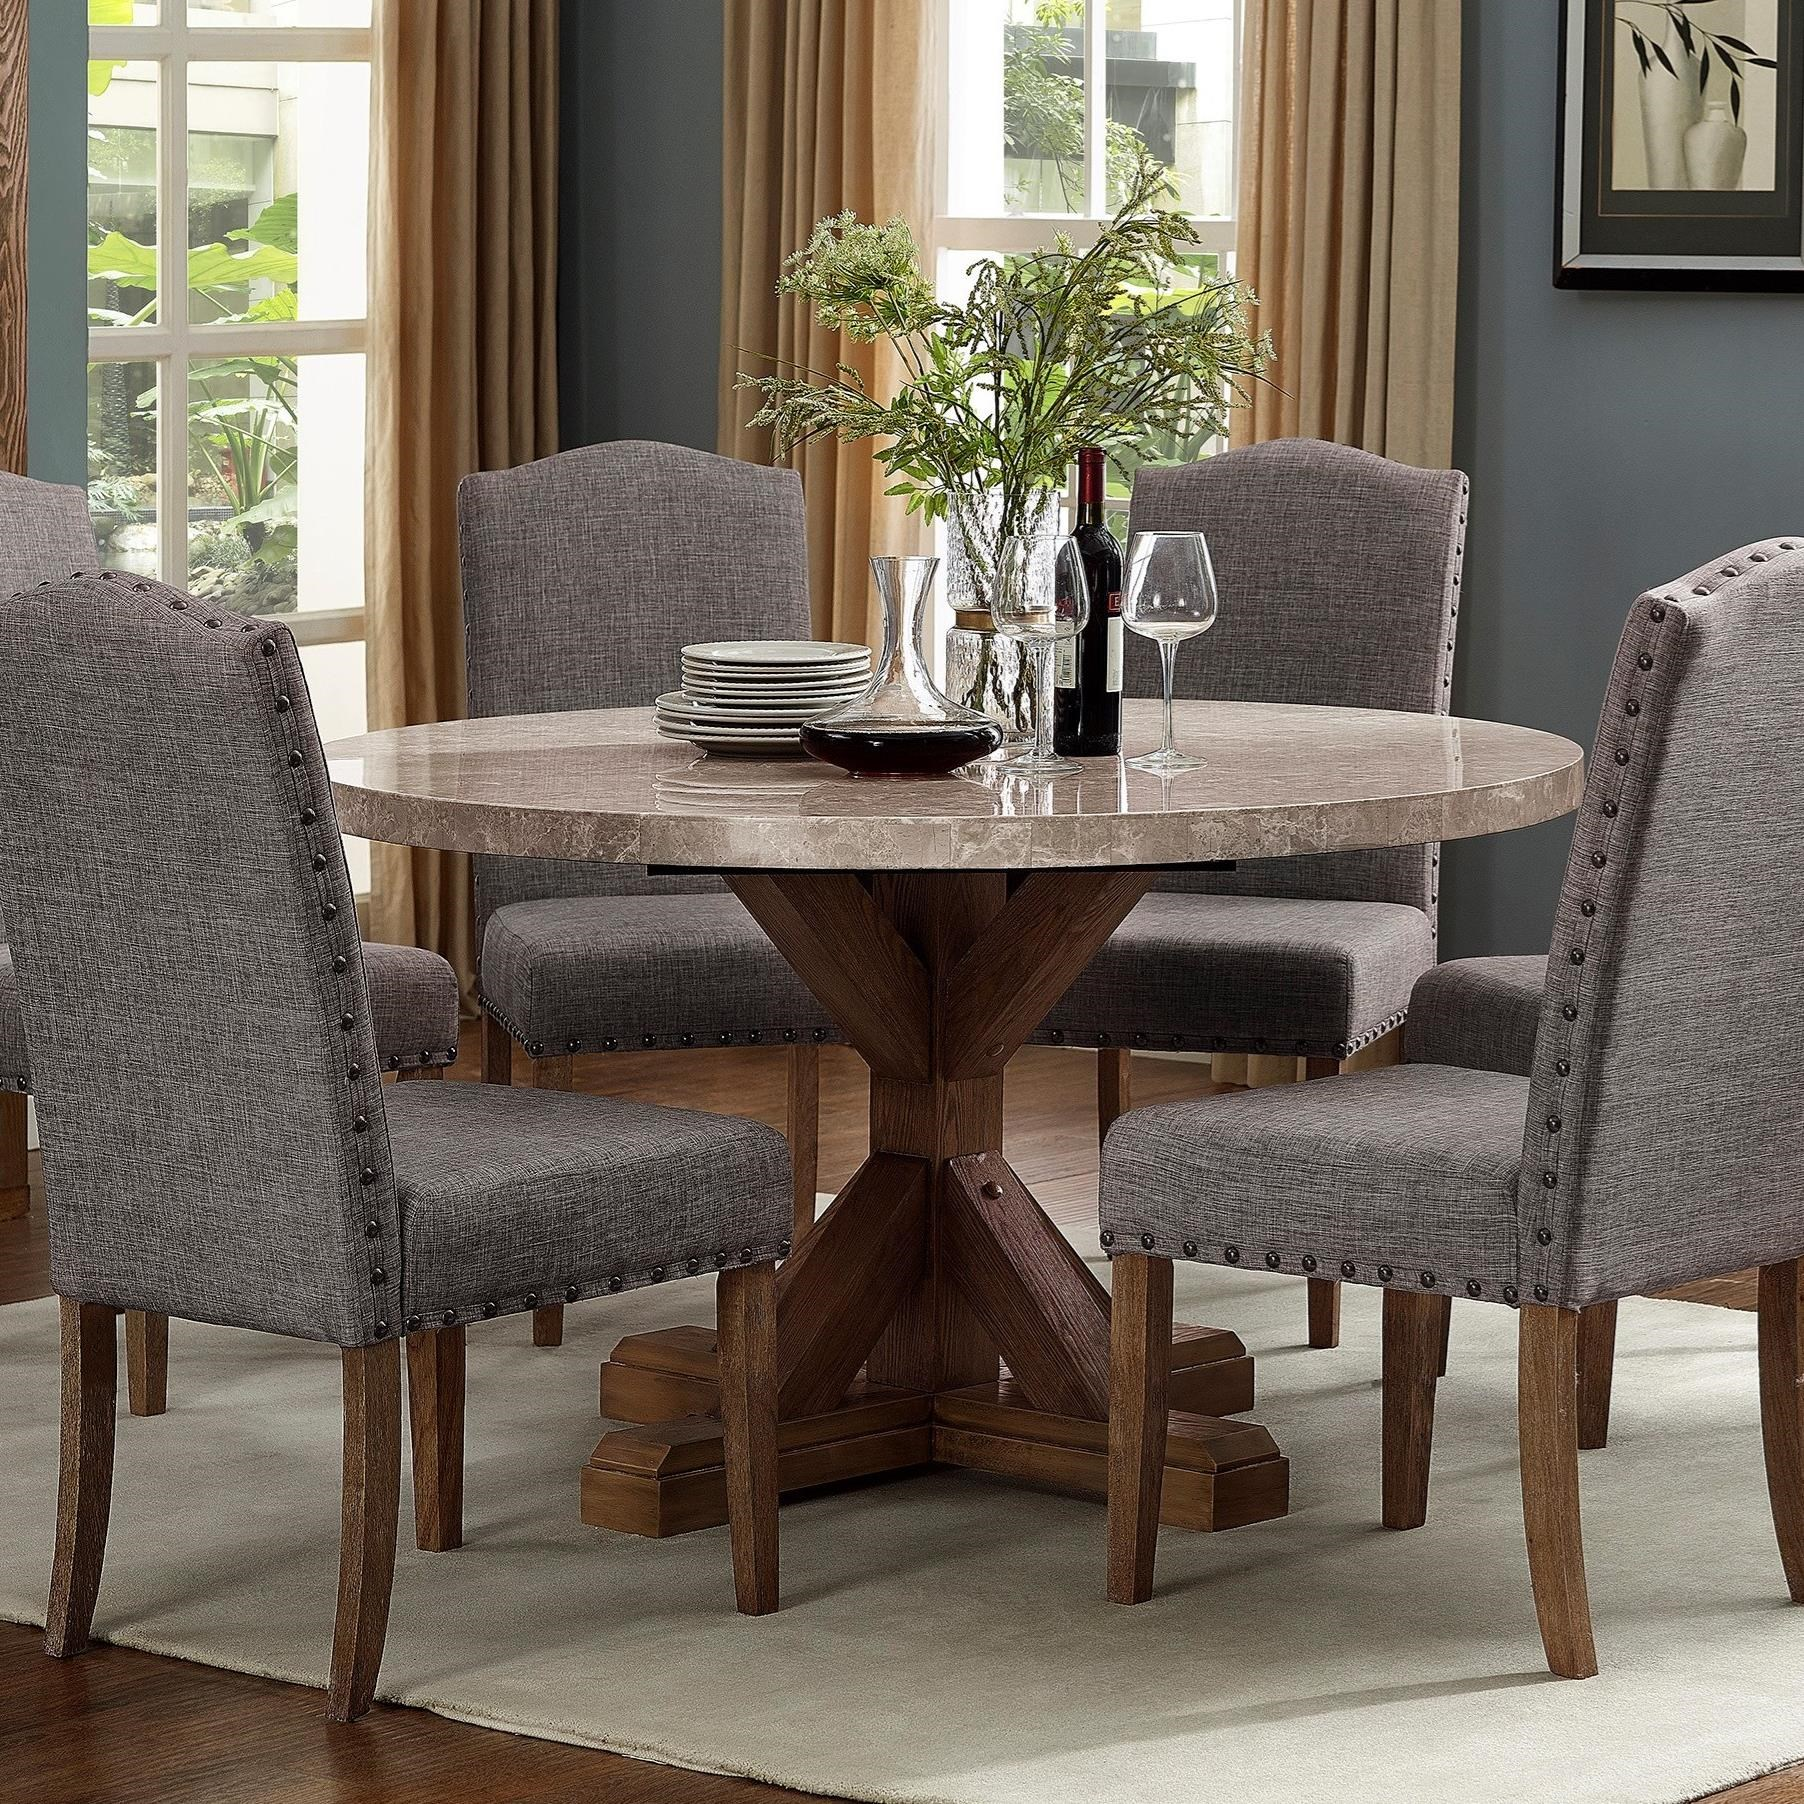 Vesper Dining Round Table by Crown Mark at Northeast Factory Direct